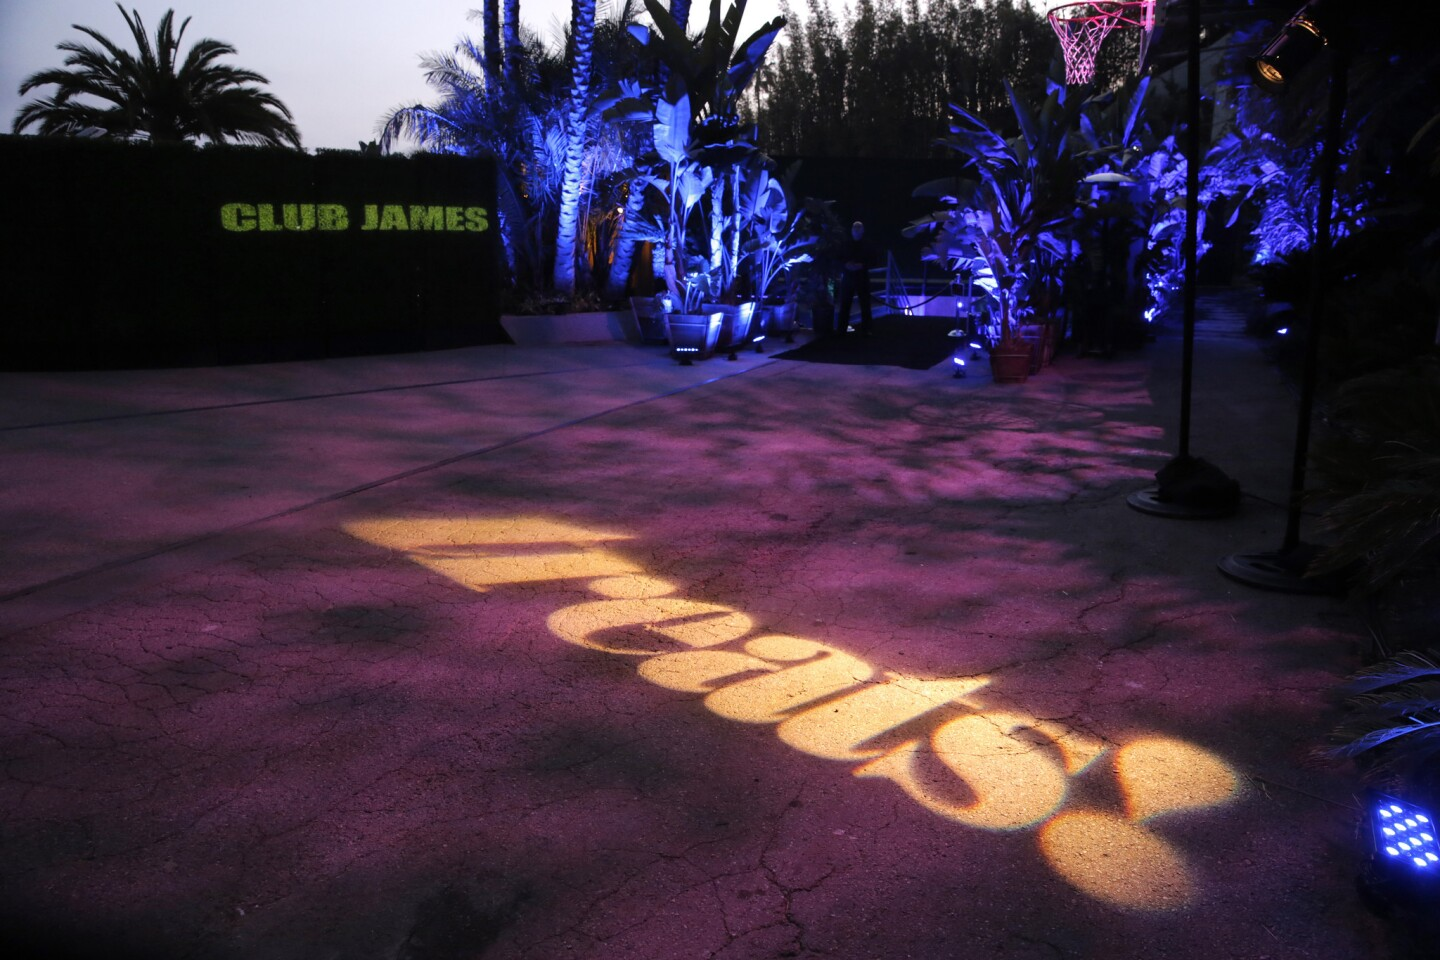 Lights helped to announce the Treats! party scene as guests arrived at the yet-to-be-opened Club James in Beverly Hills.